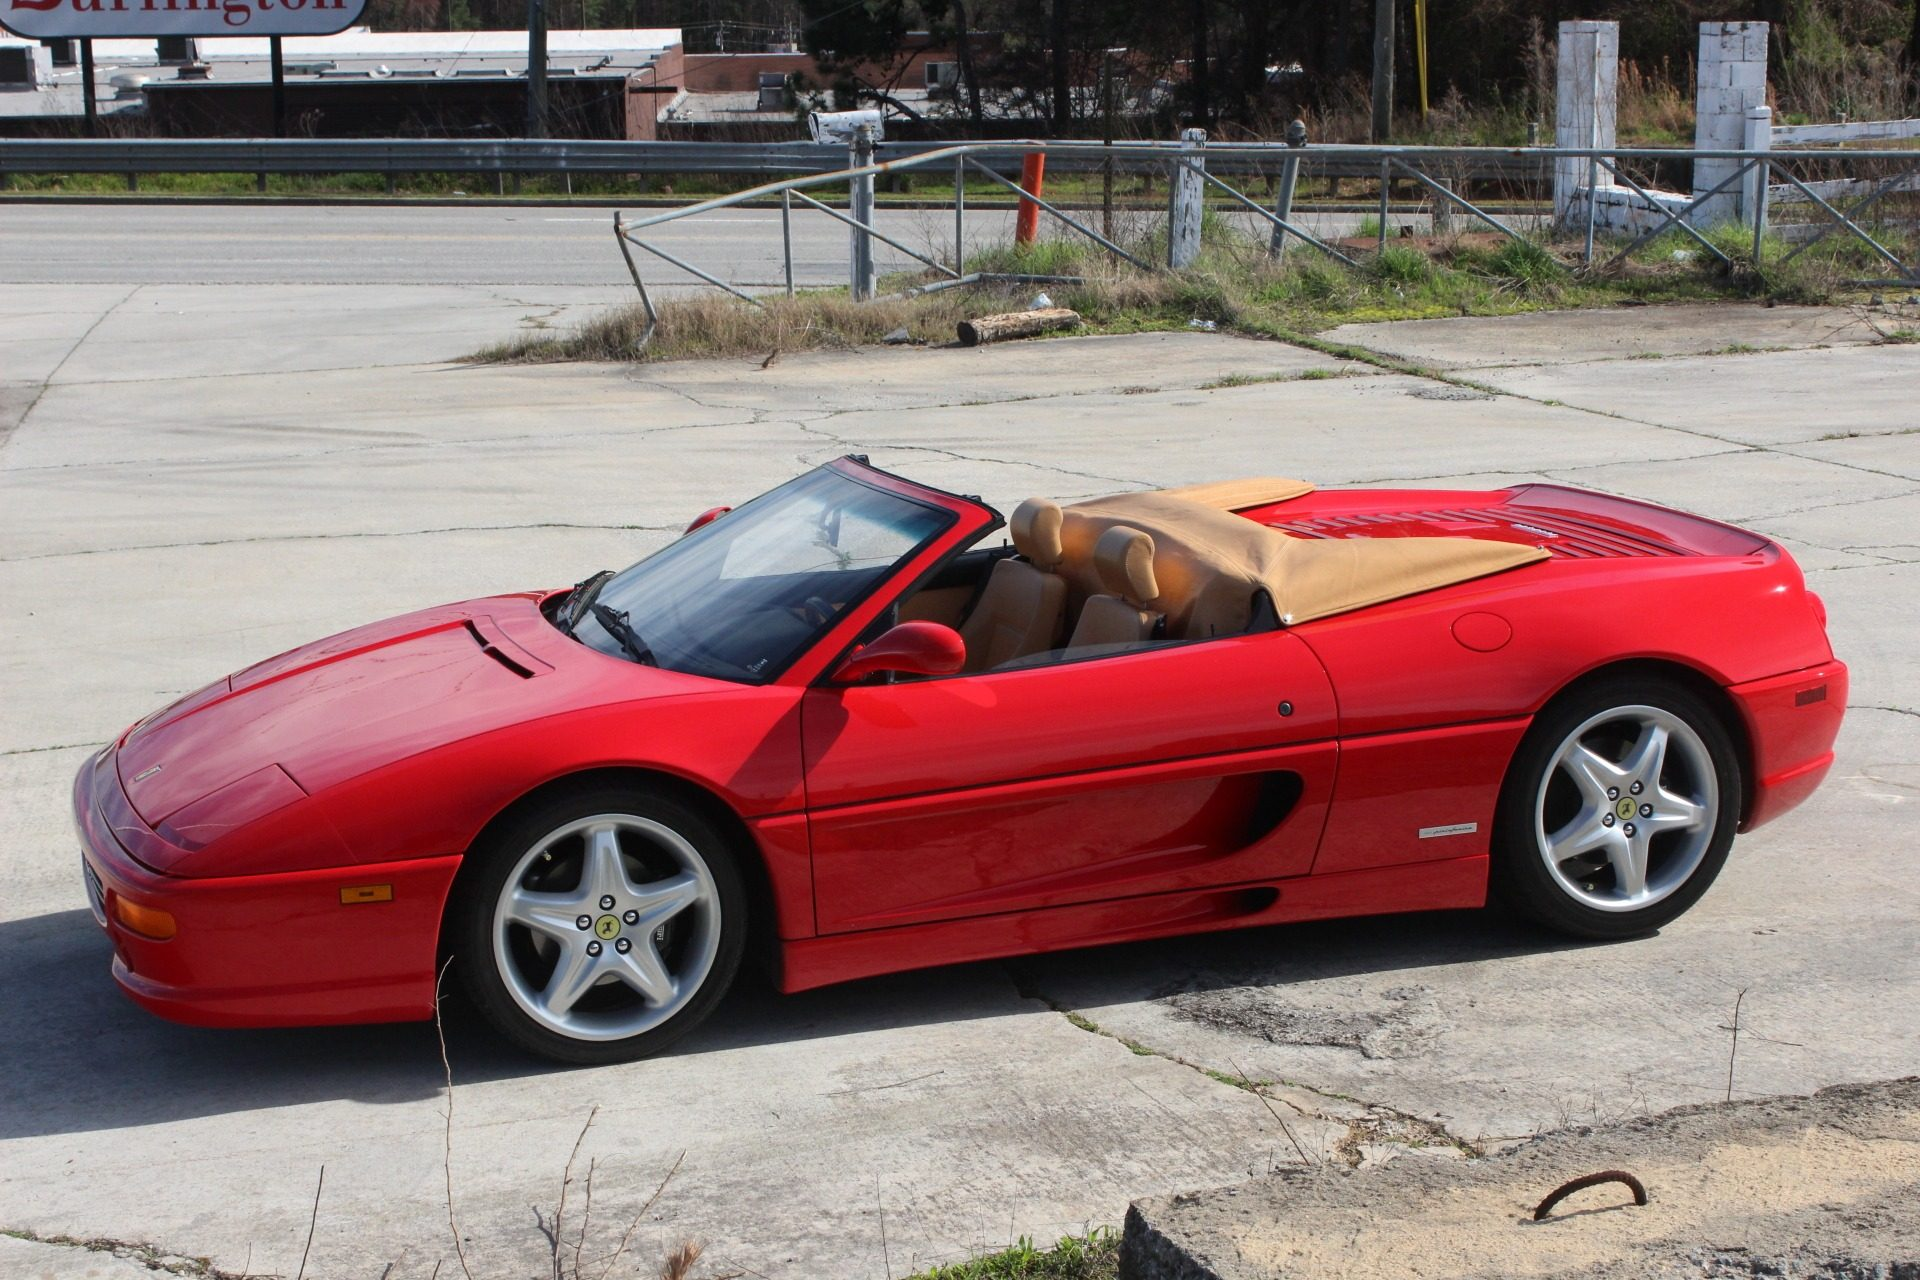 Ferrari 355 Buyer's Guide To Avoid Costly Ferrari Services